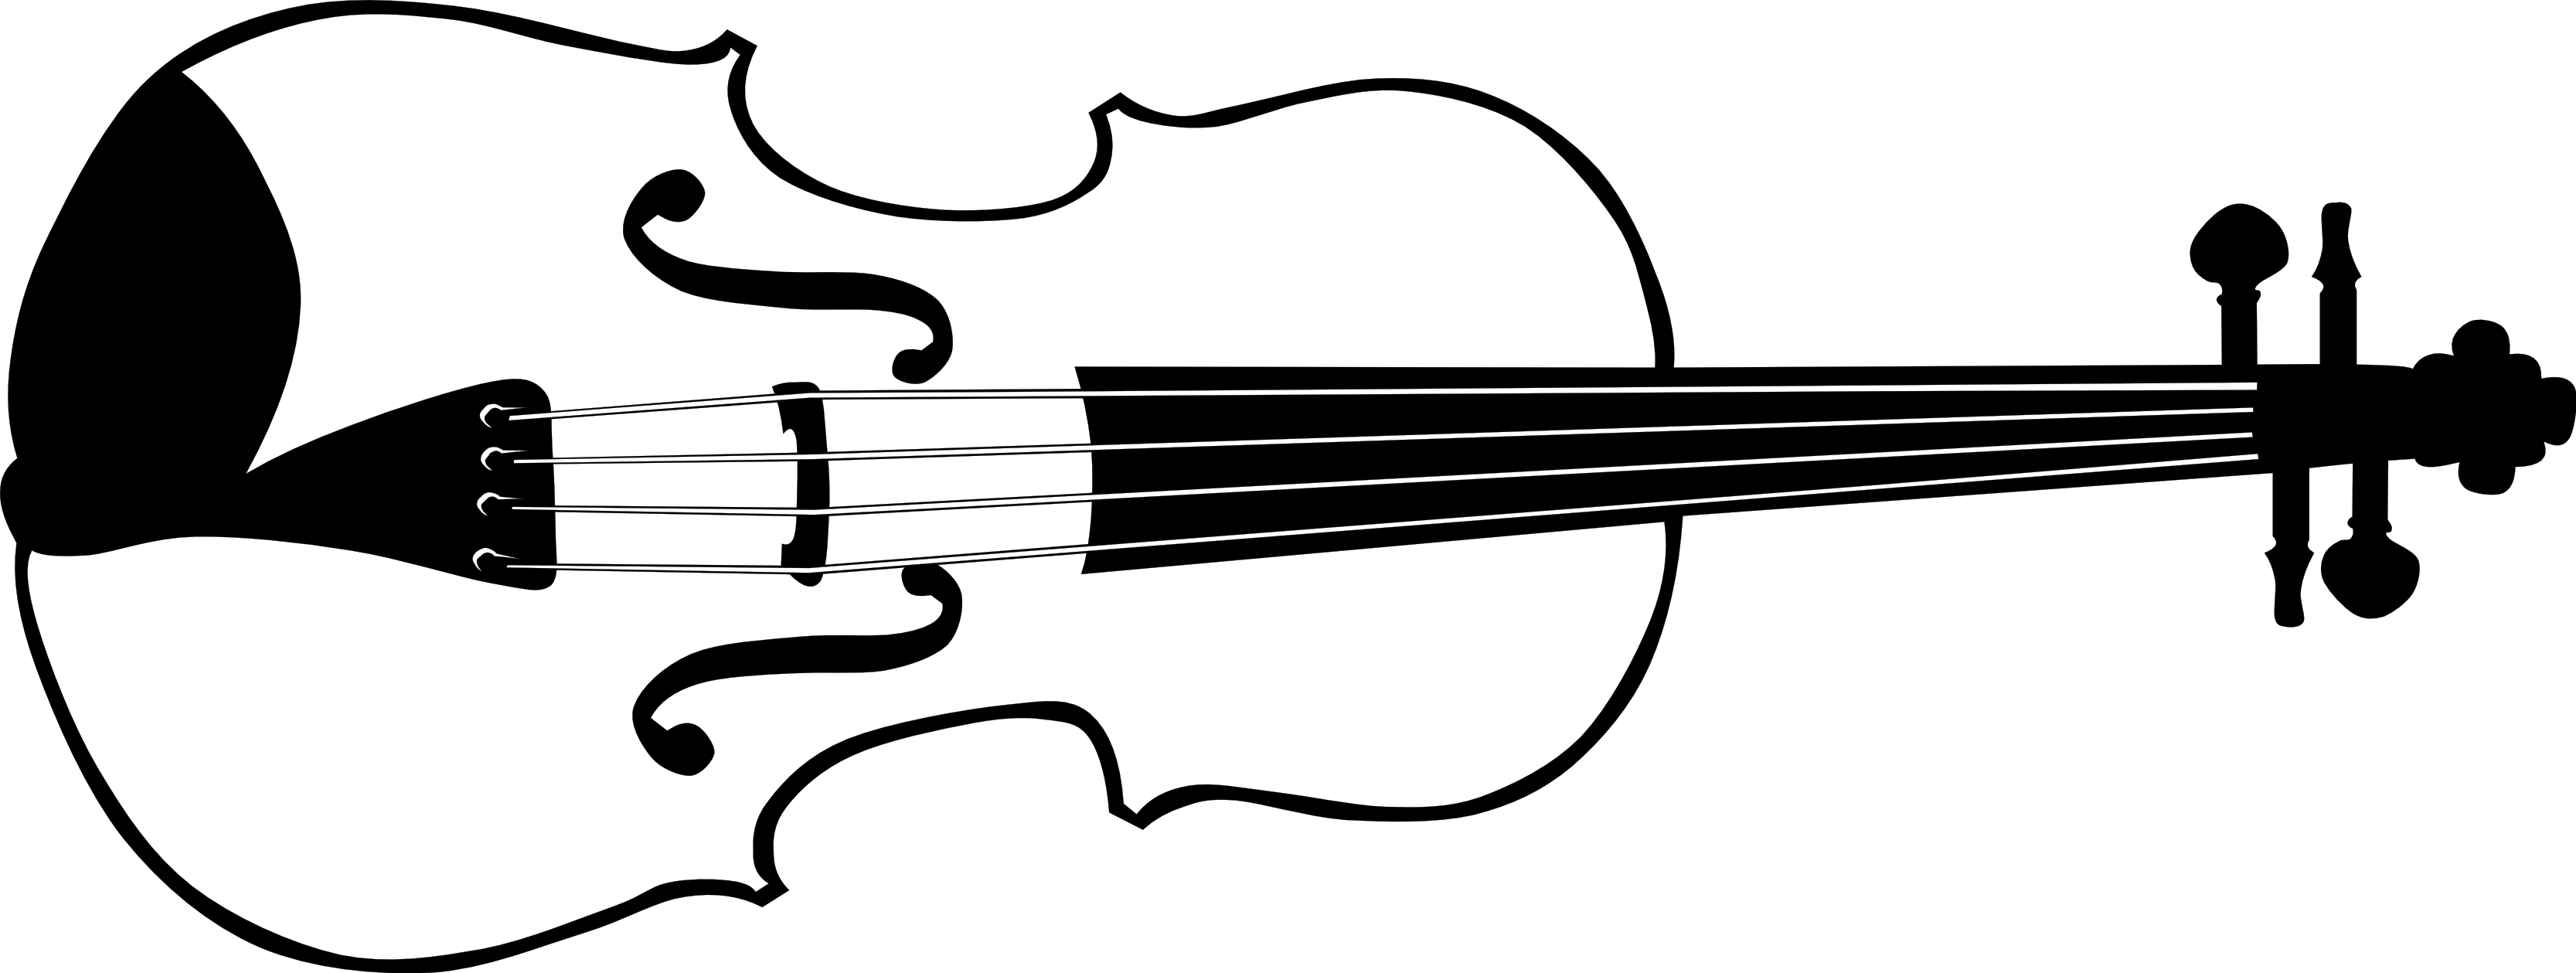 Music Clipart Black And White-music clipart black and white-11